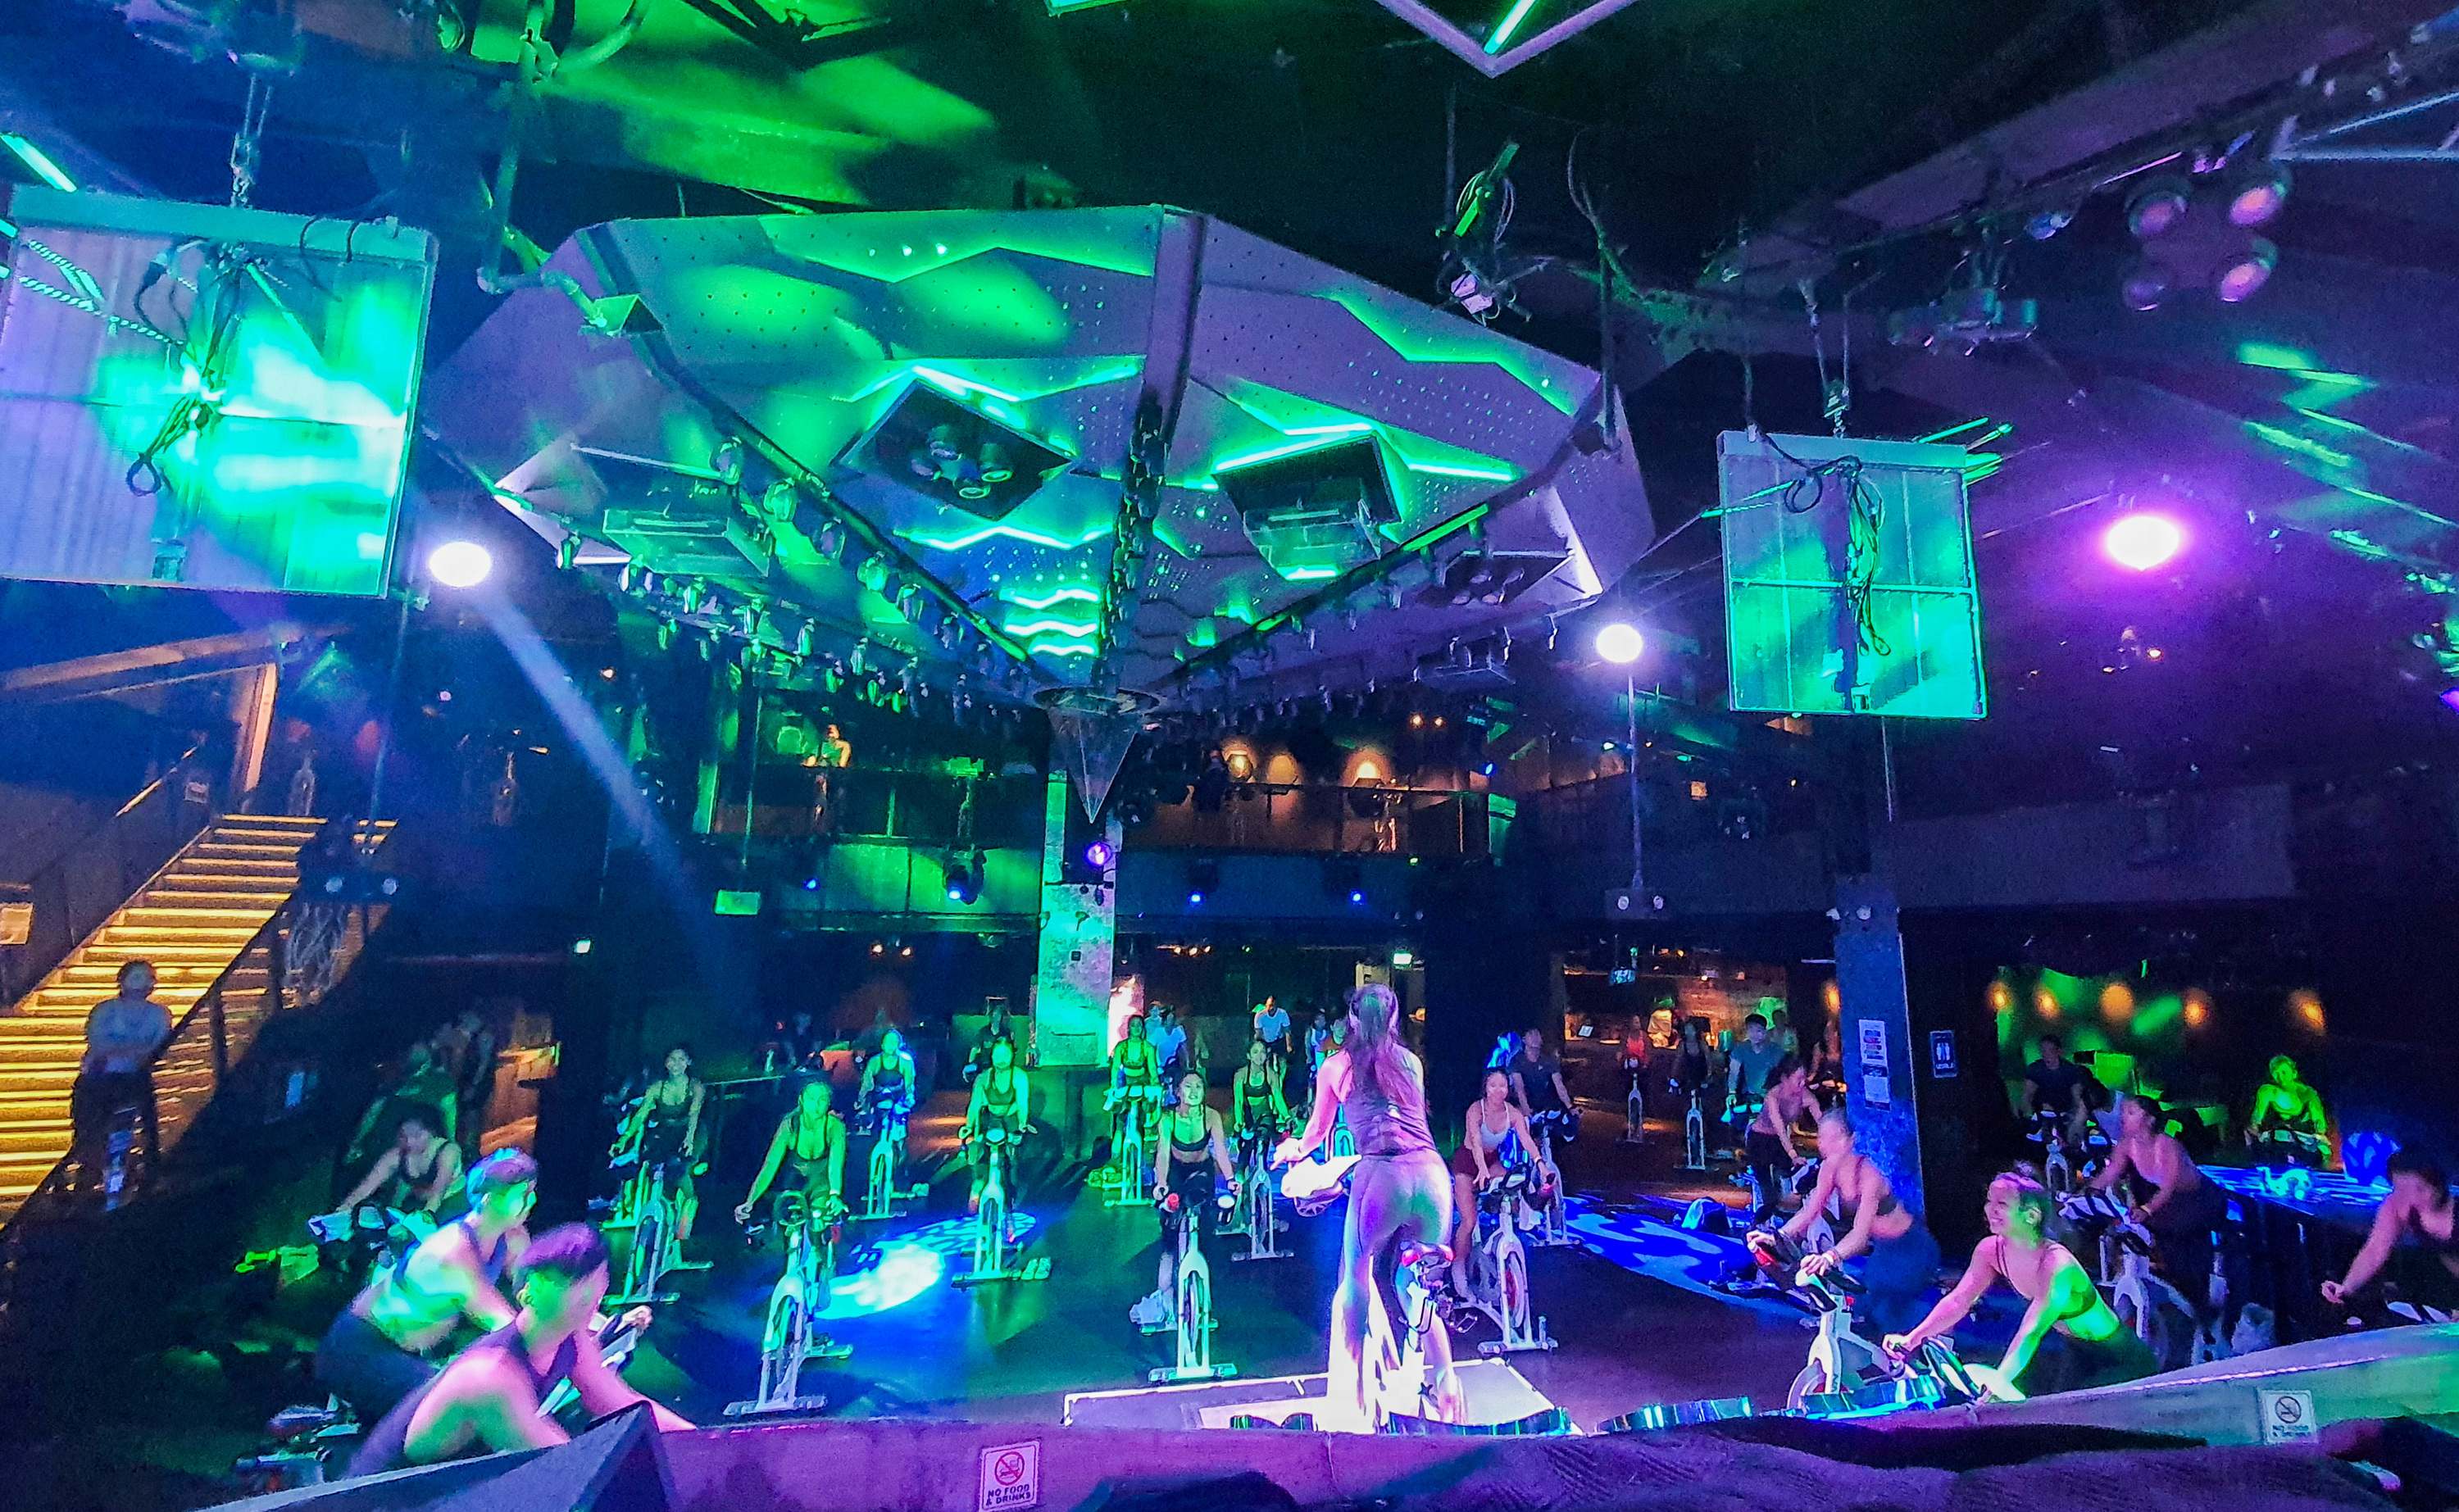 Nightclub Zouk is now a spinning studio by day, and cinema by night